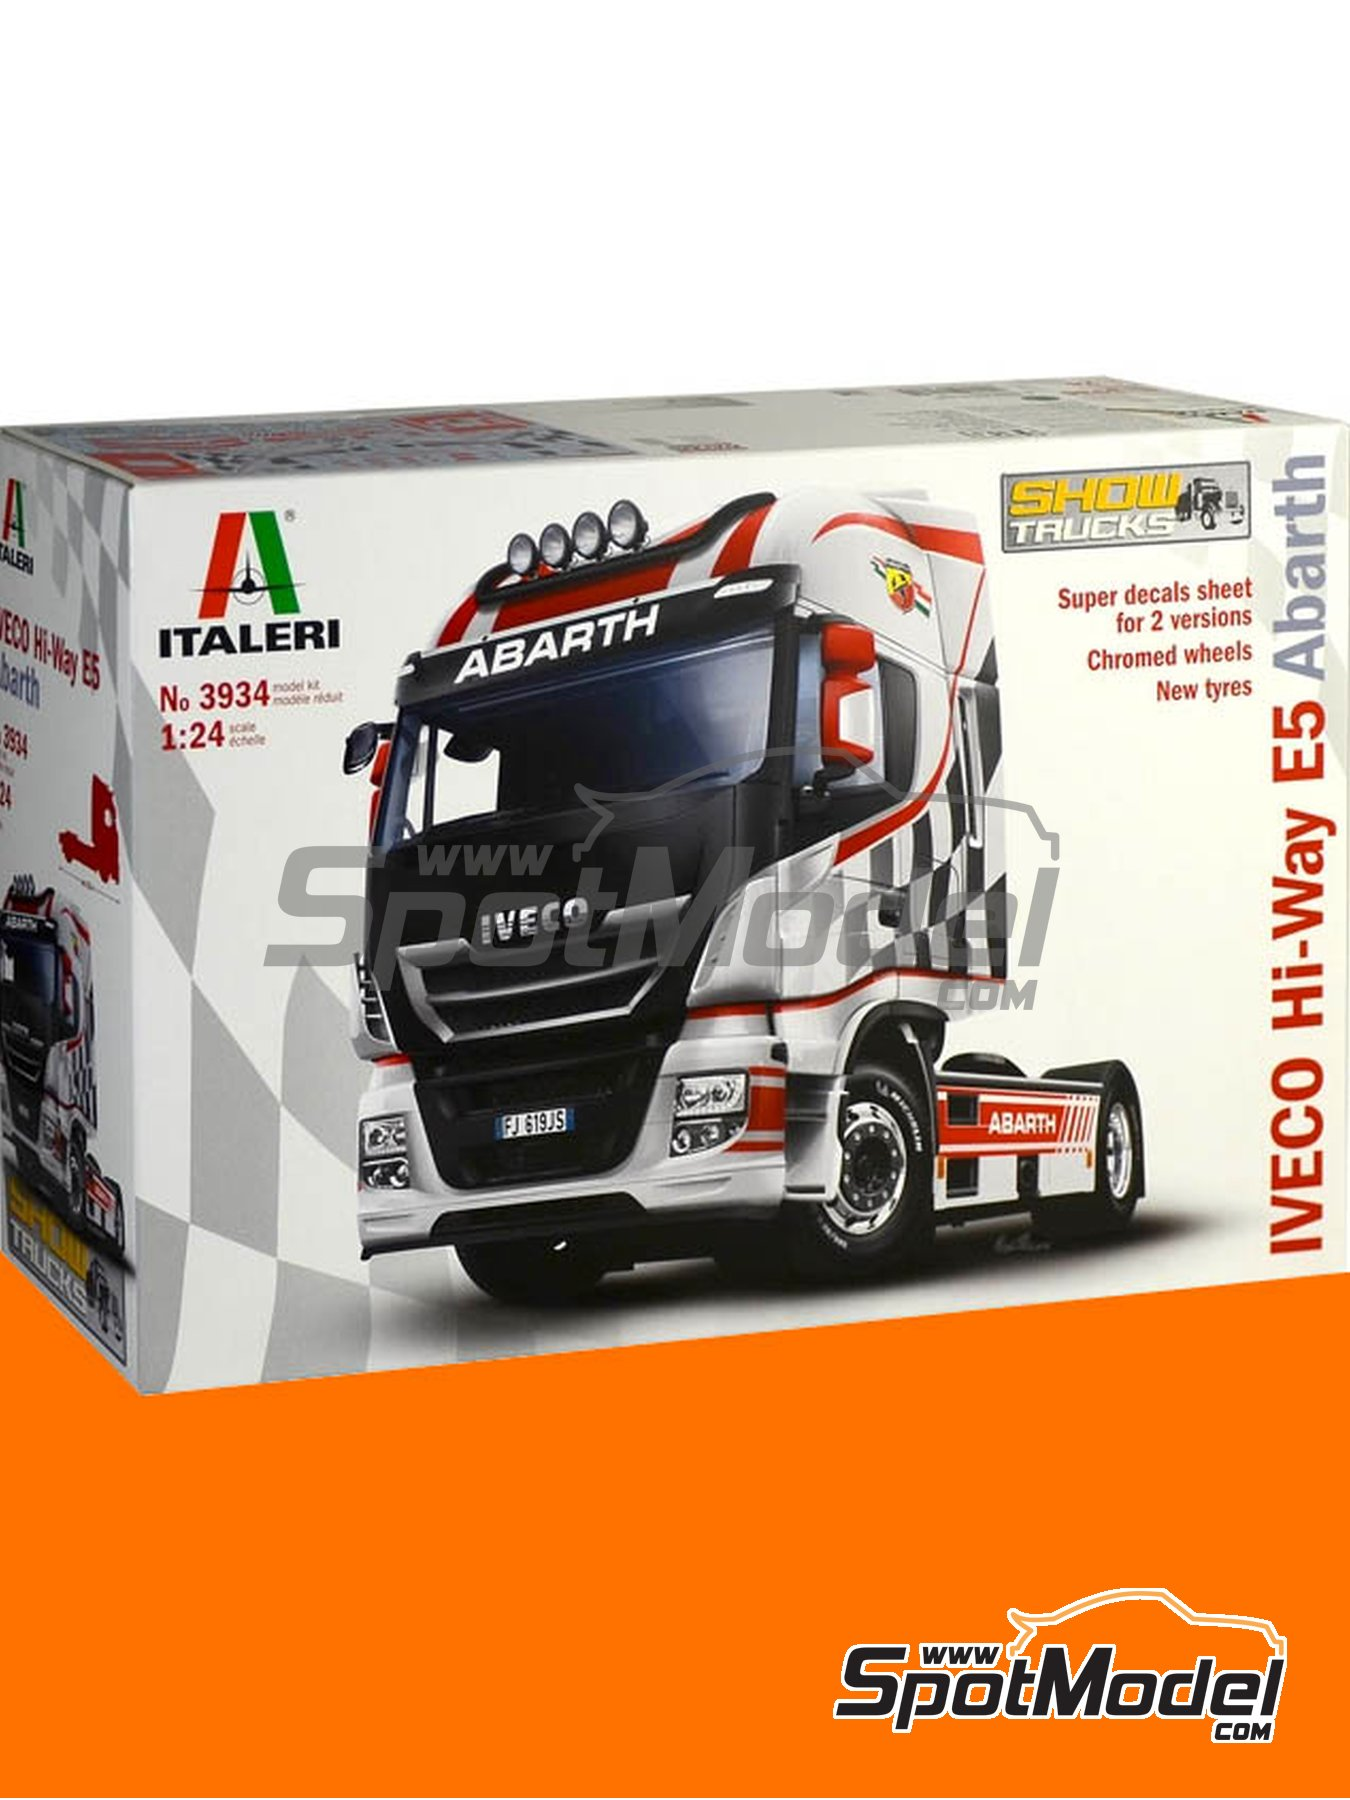 Iveco Stralis 560 Hi-Way Euro 5 Abarth | Model truck kit in 1/24 scale manufactured by Italeri (ref. 3934) image